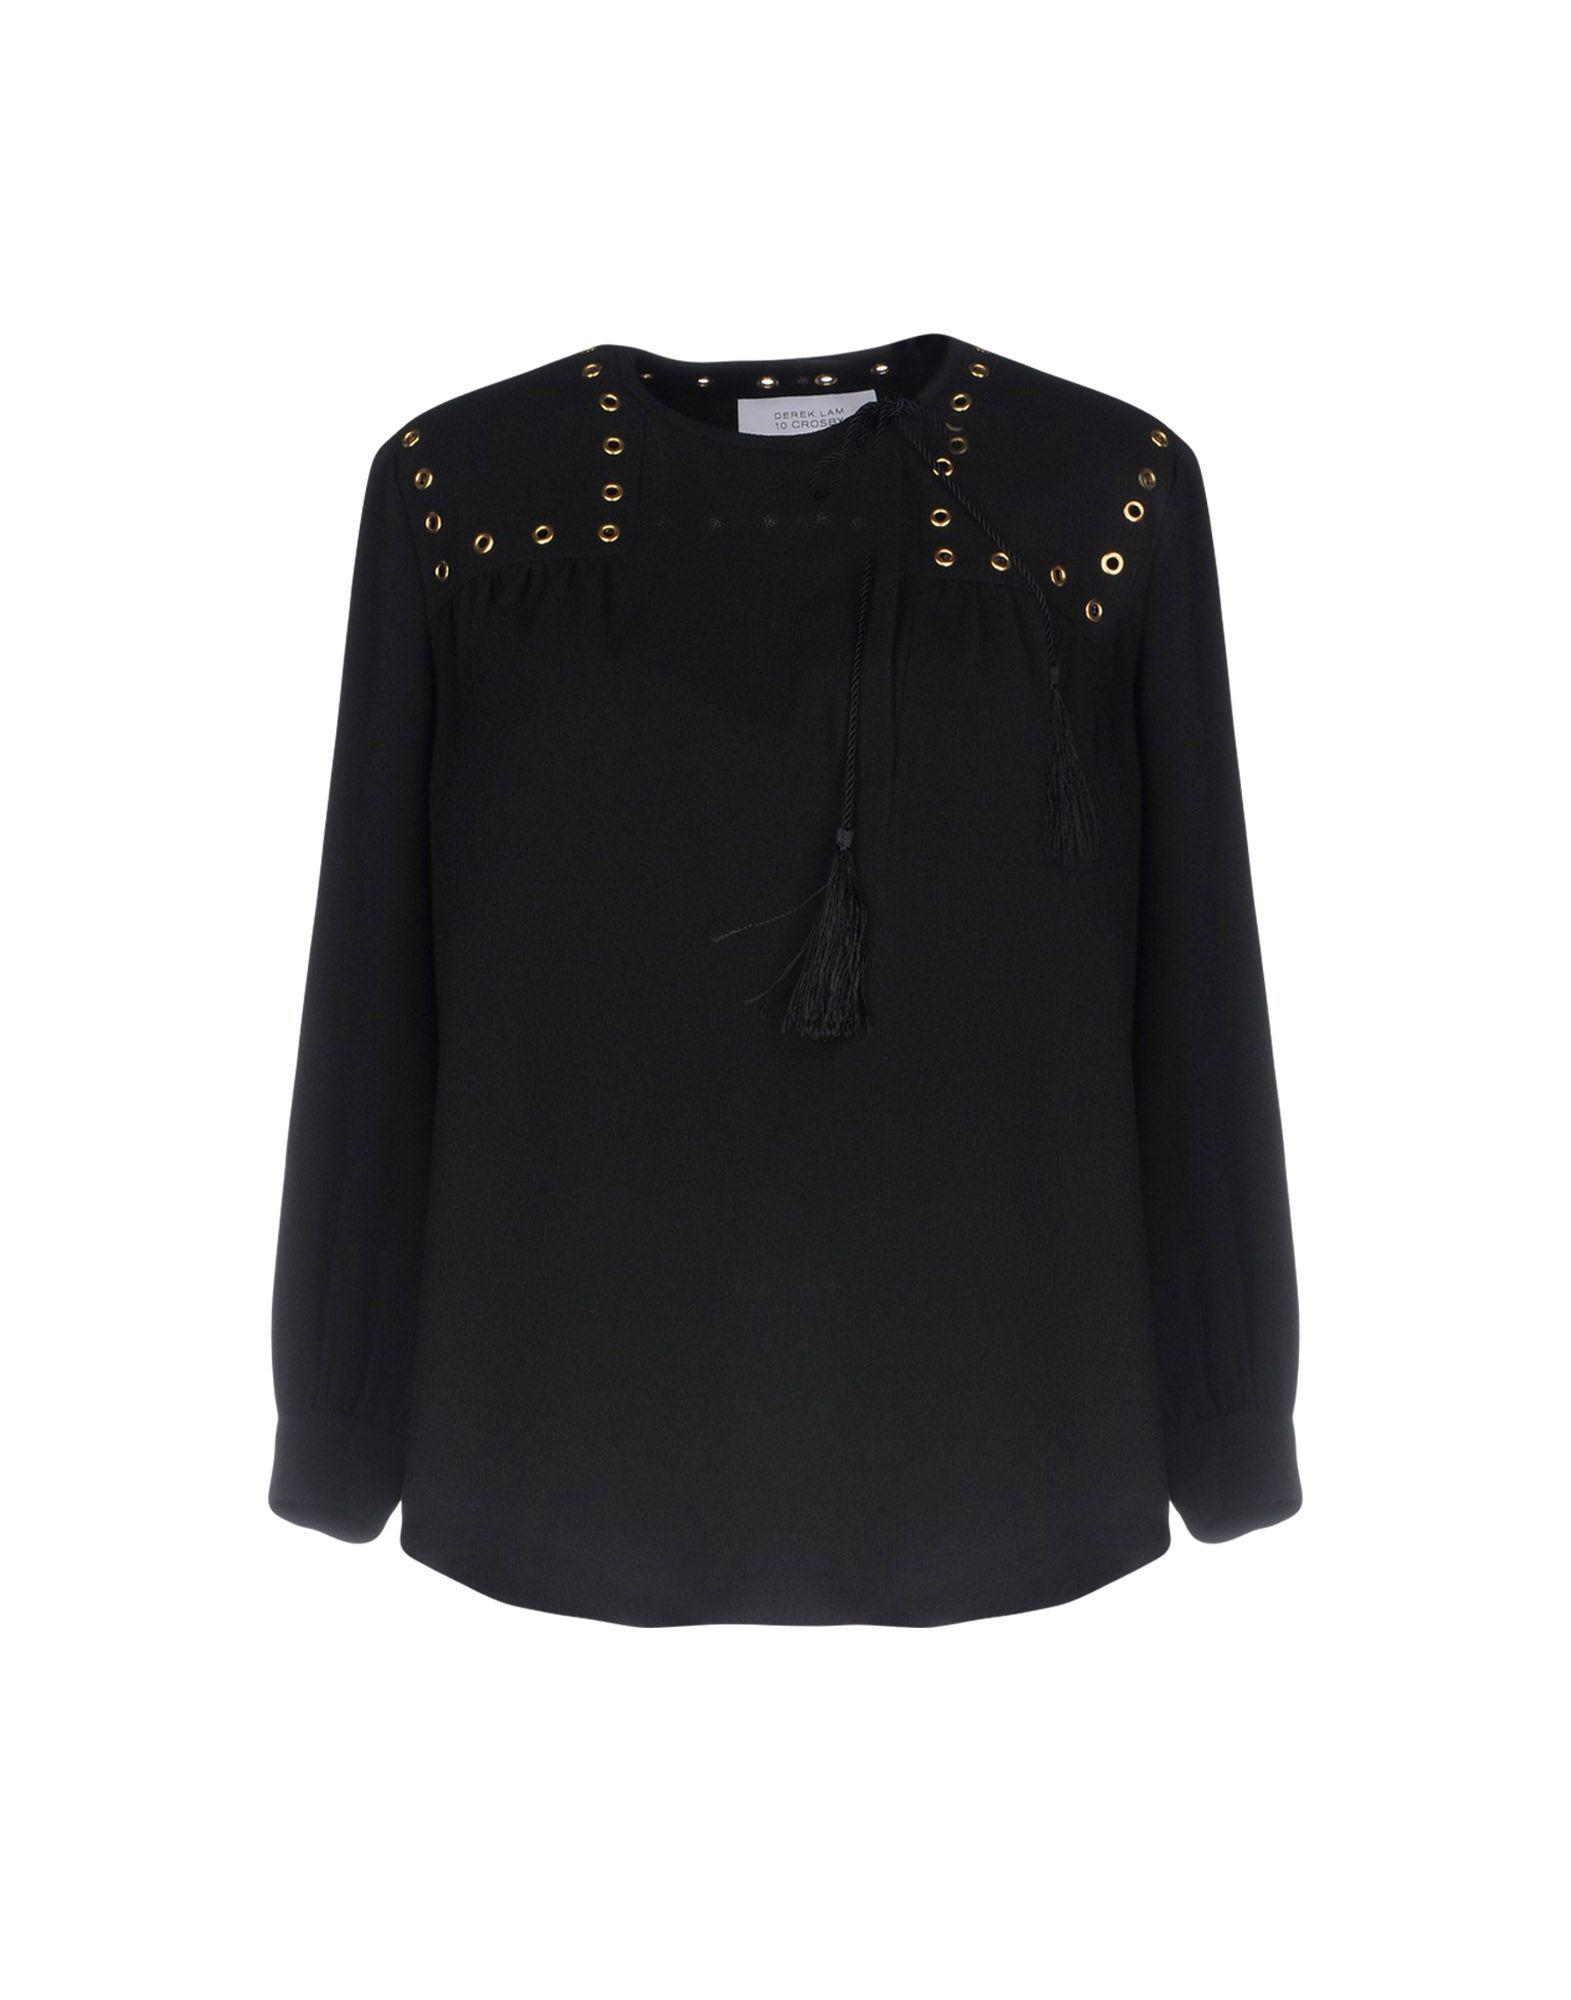 Discount Authentic Free Shipping Manchester Great Sale floral embroidered blouse - Black Derek Lam 2018 New Cheap Online With Paypal Sale Online Drop Shipping fMBSSLtdy